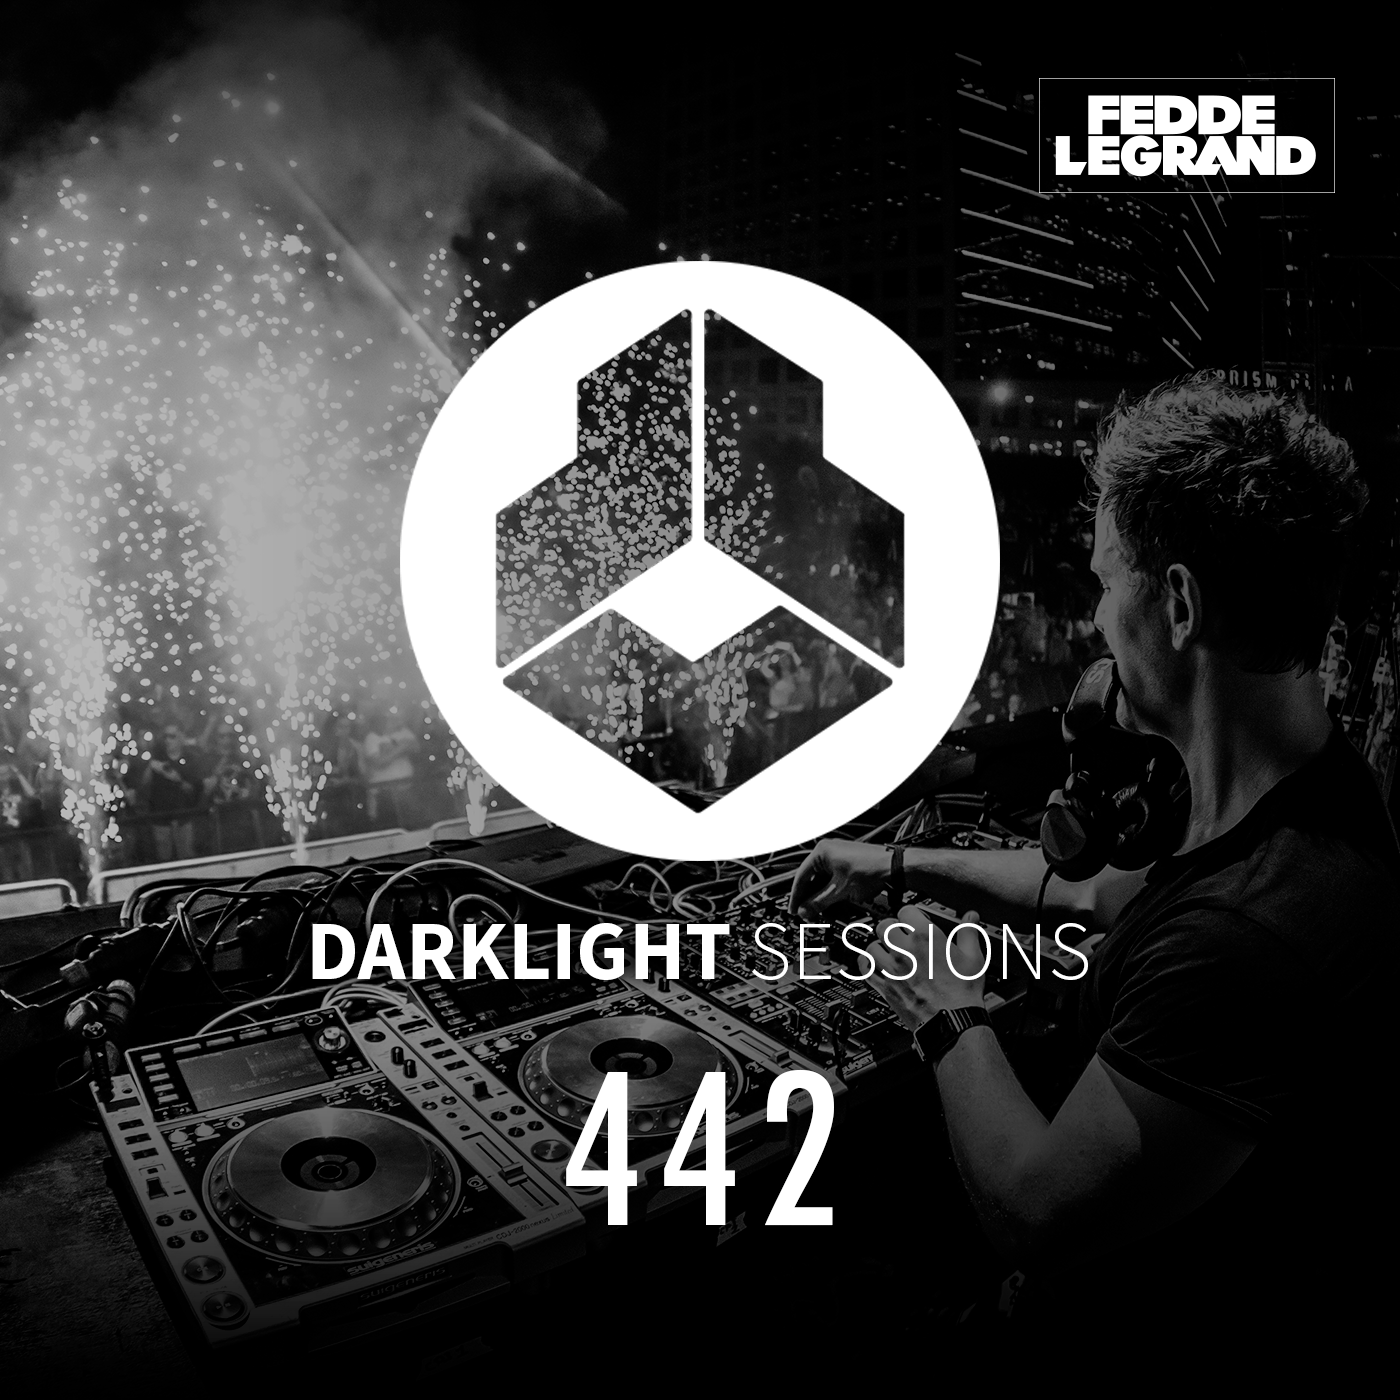 Darklight Sessions 442